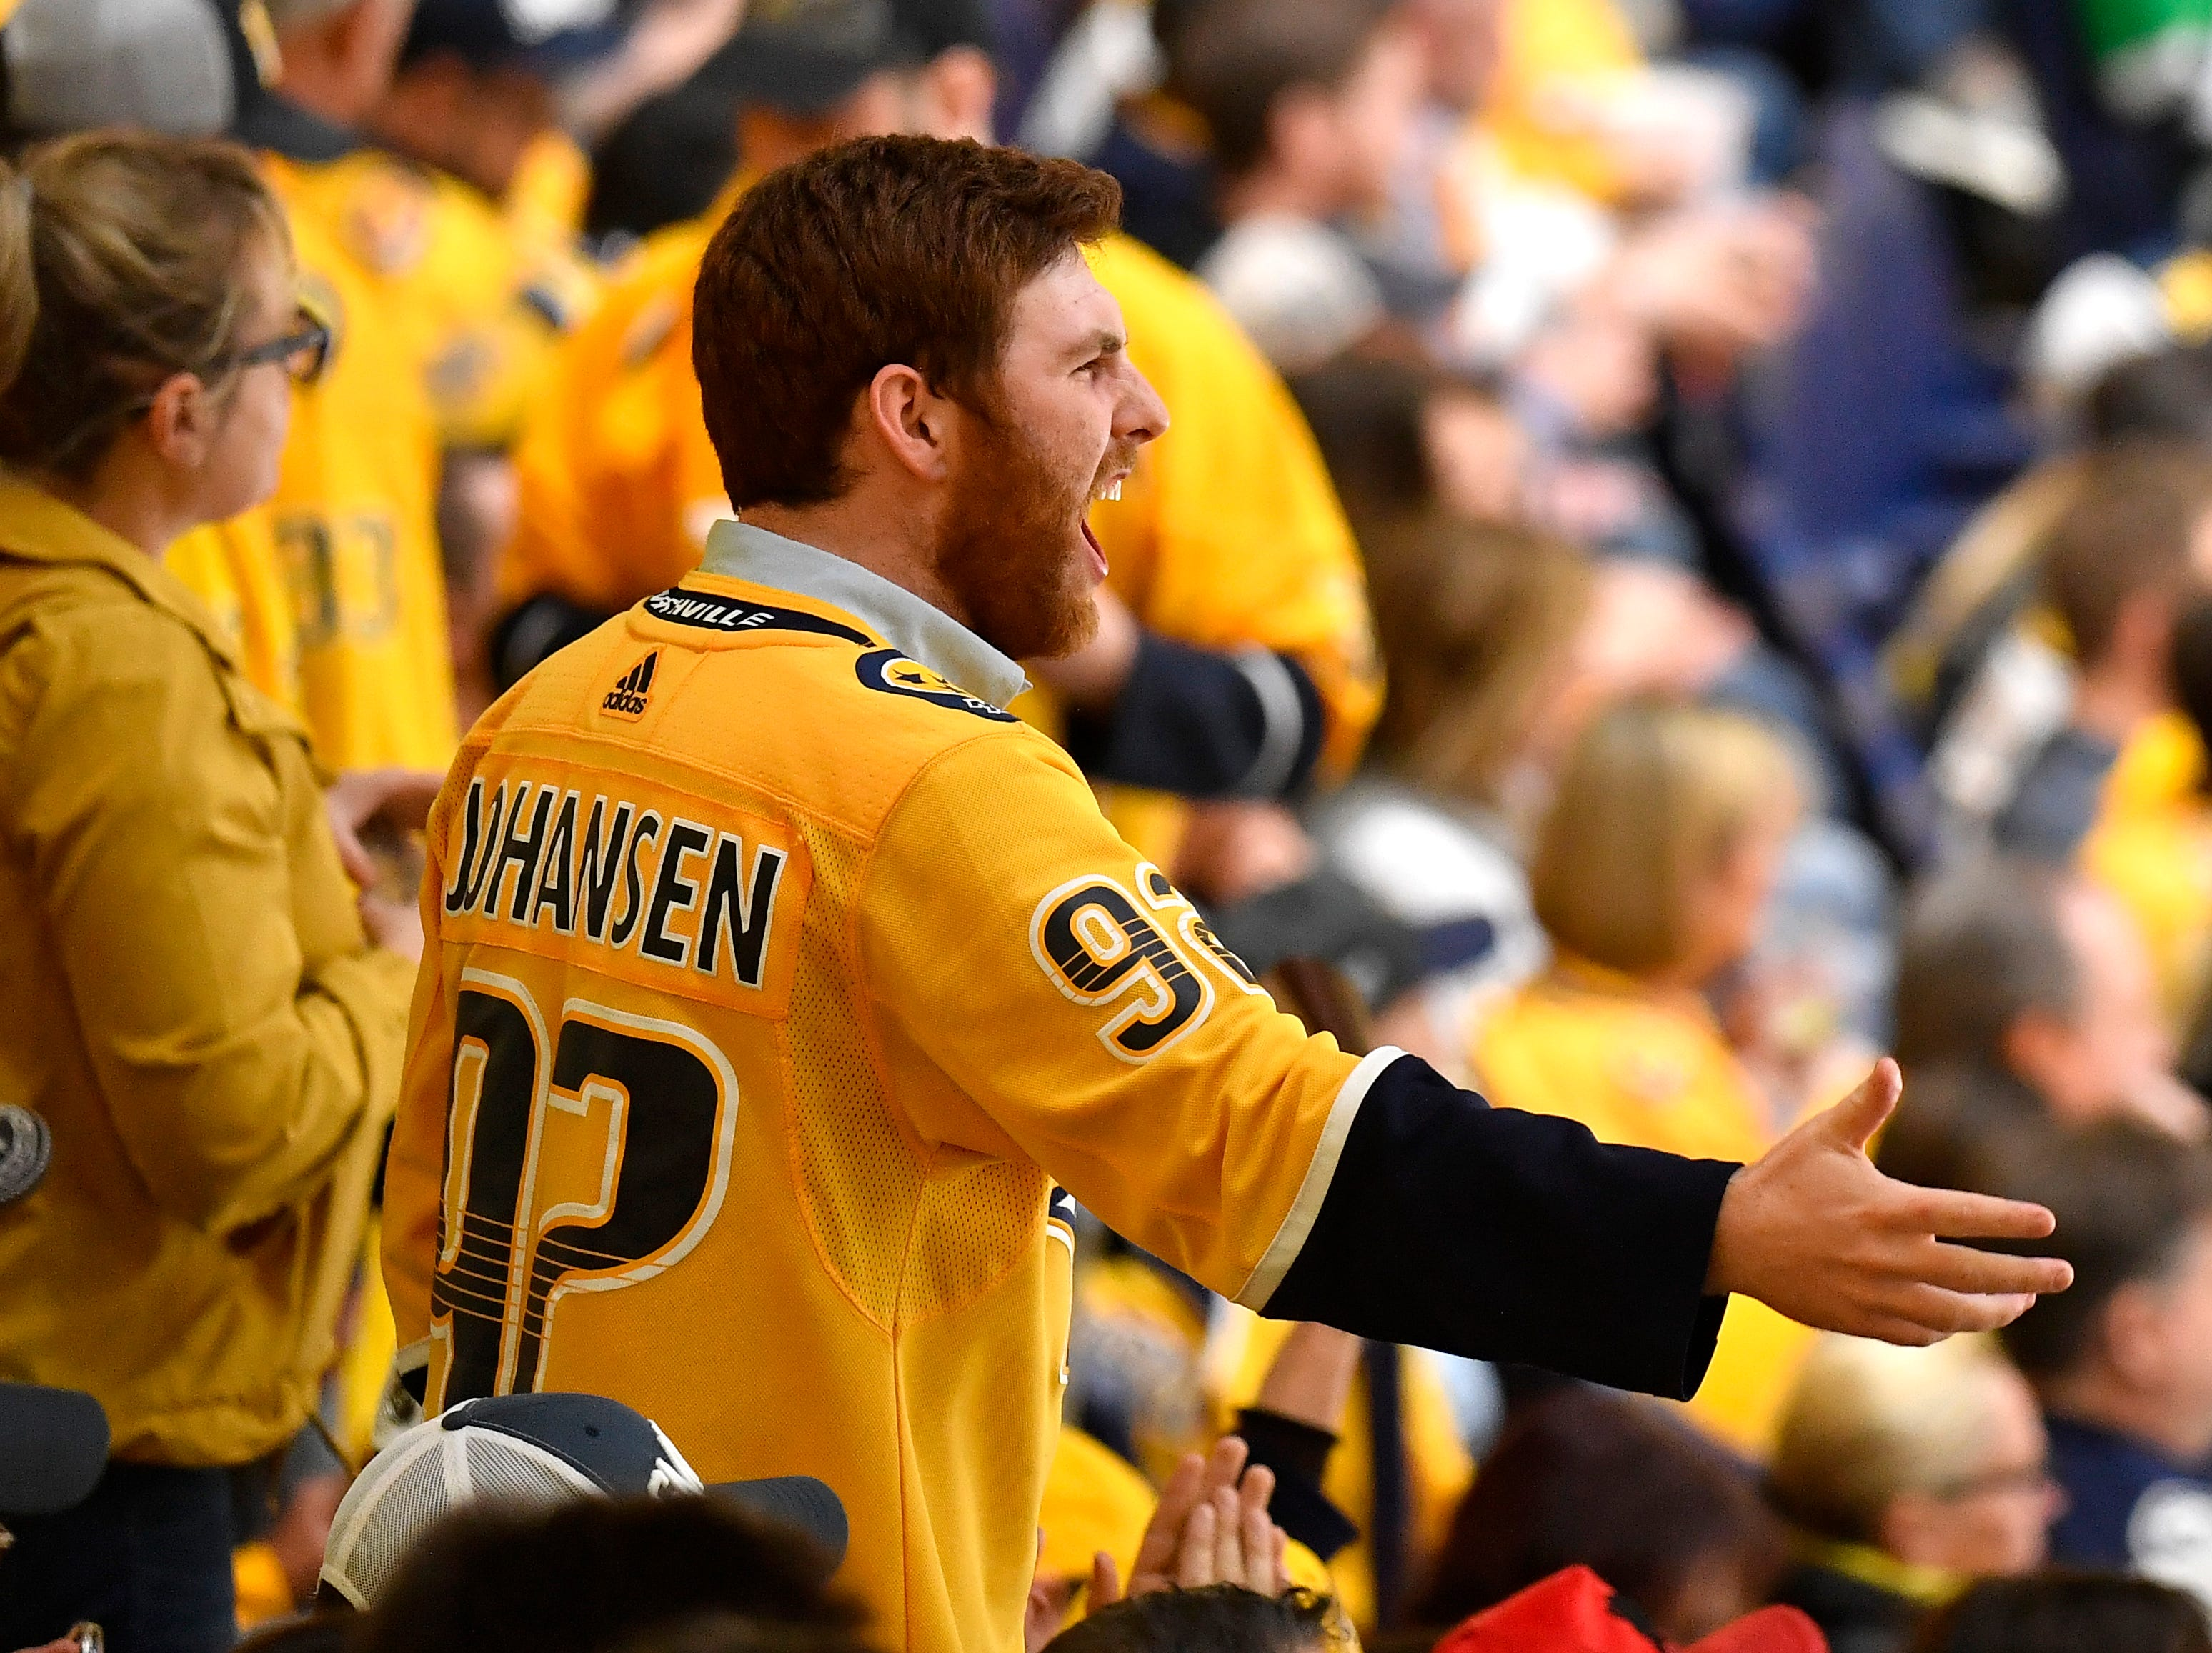 A Predators fan yells during the third period of the divisional semifinal game against the Stars at Bridgestone Arena in Nashville, Tenn., Wednesday, April 10, 2019.